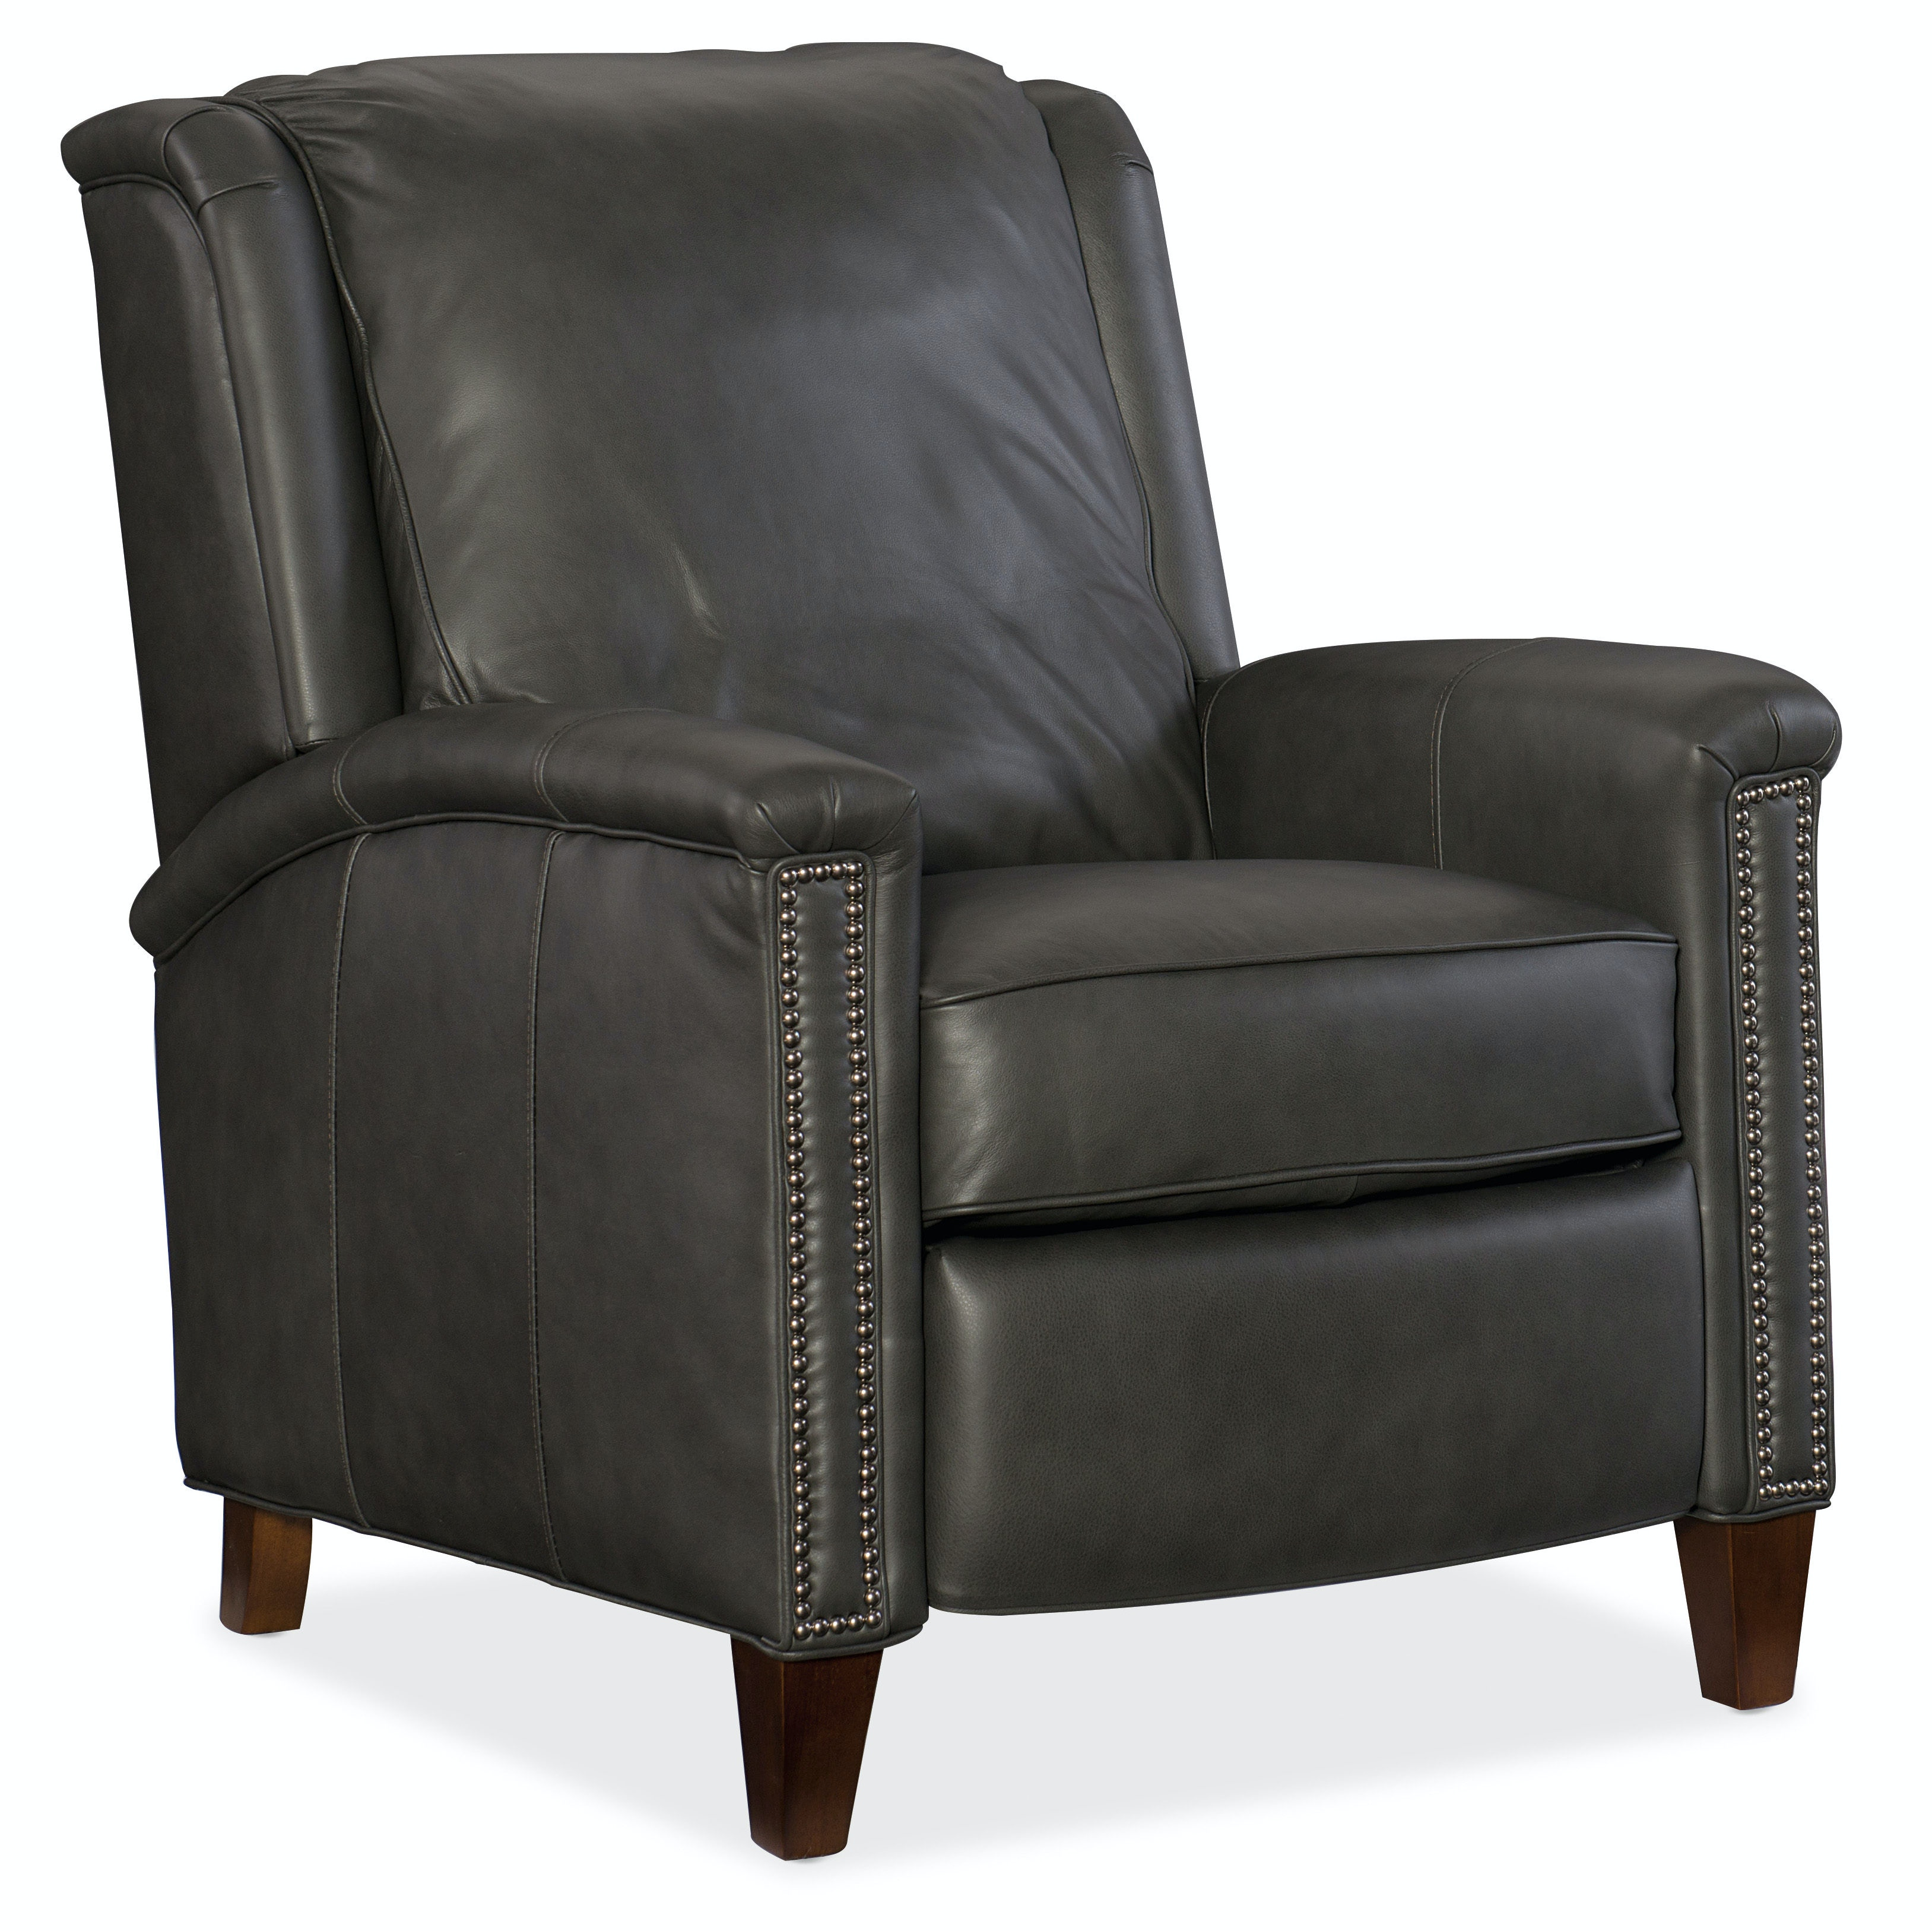 Hooker Furniture Kelly Recliner RC517 096 ...